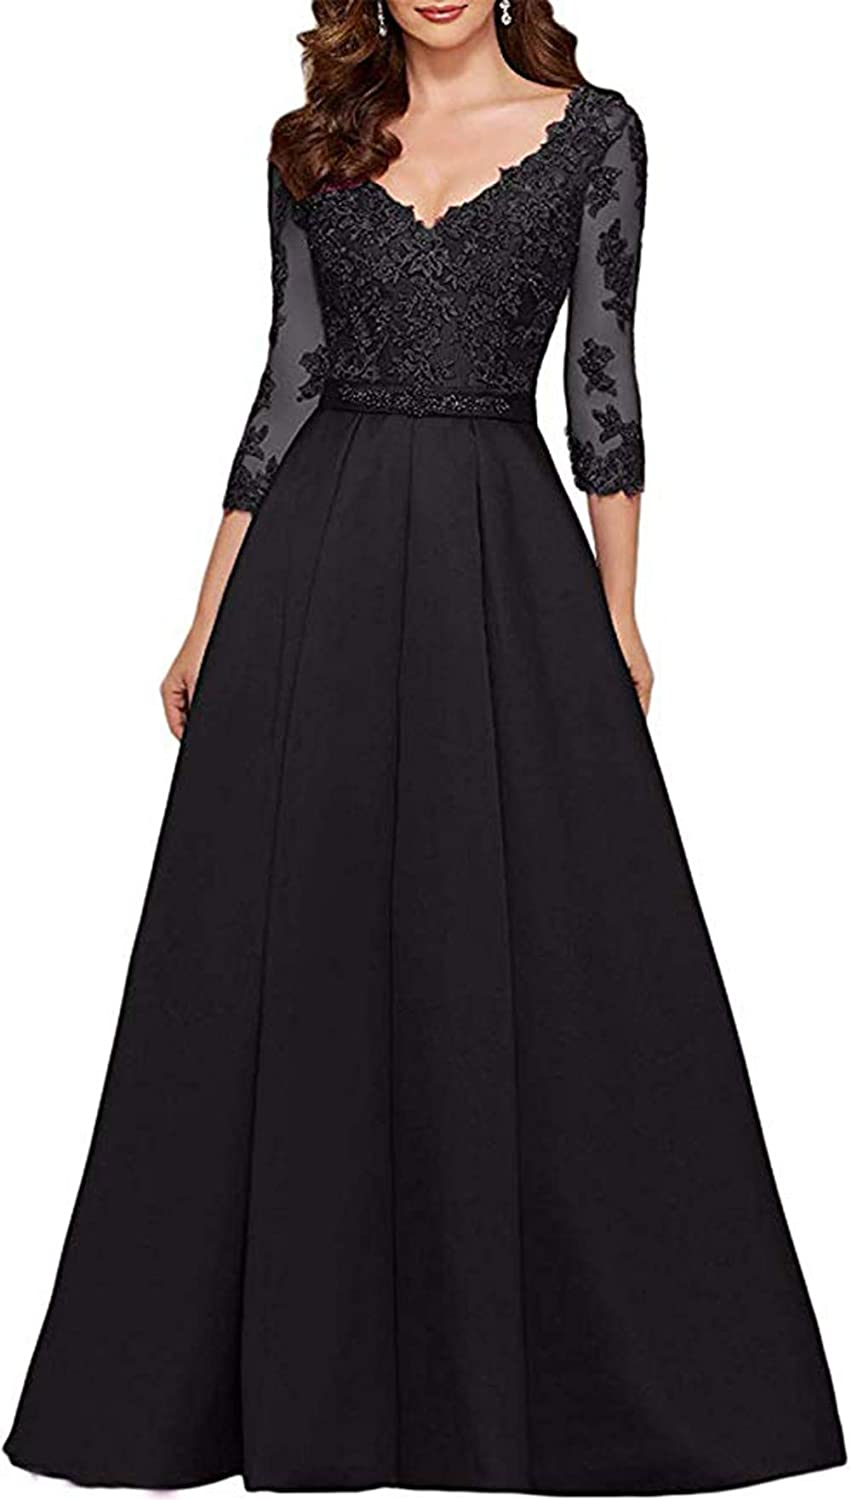 Black Ri Yun Womens V Neck 3 4 Sleeves Prom Dresses Long 2019 Beaded Lace Mother of The Bride Dresses with Pockets